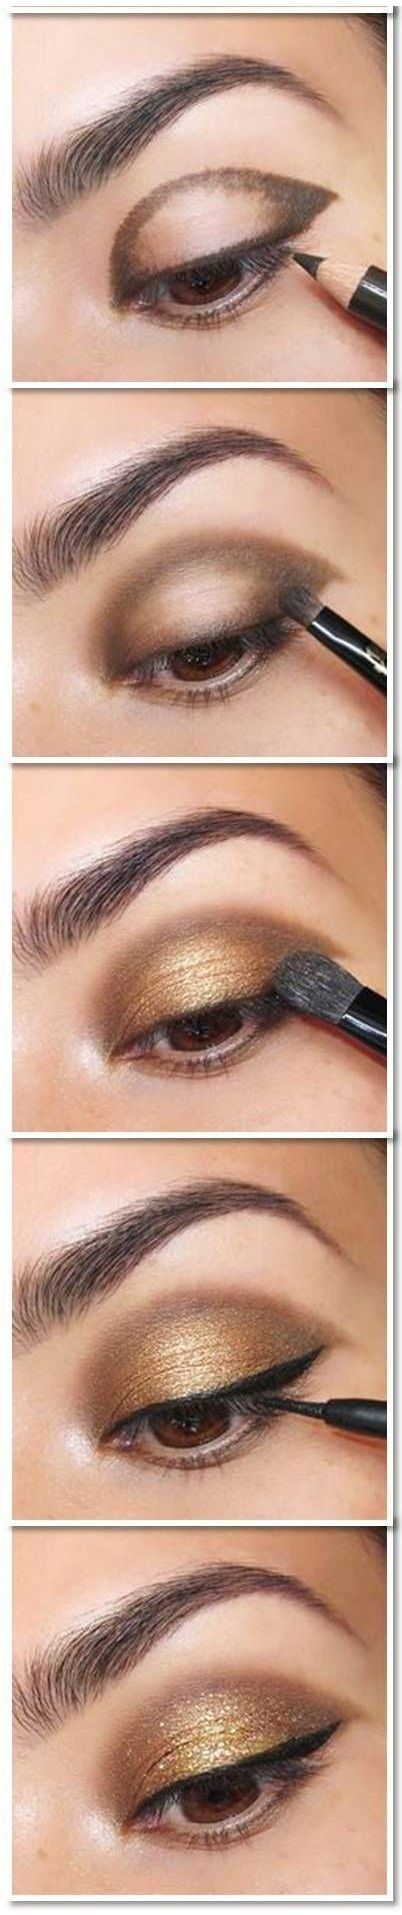 #simple. I never comment on make-up tips, but this is really beautiful. I also have brown  eye's so maybe thats why.